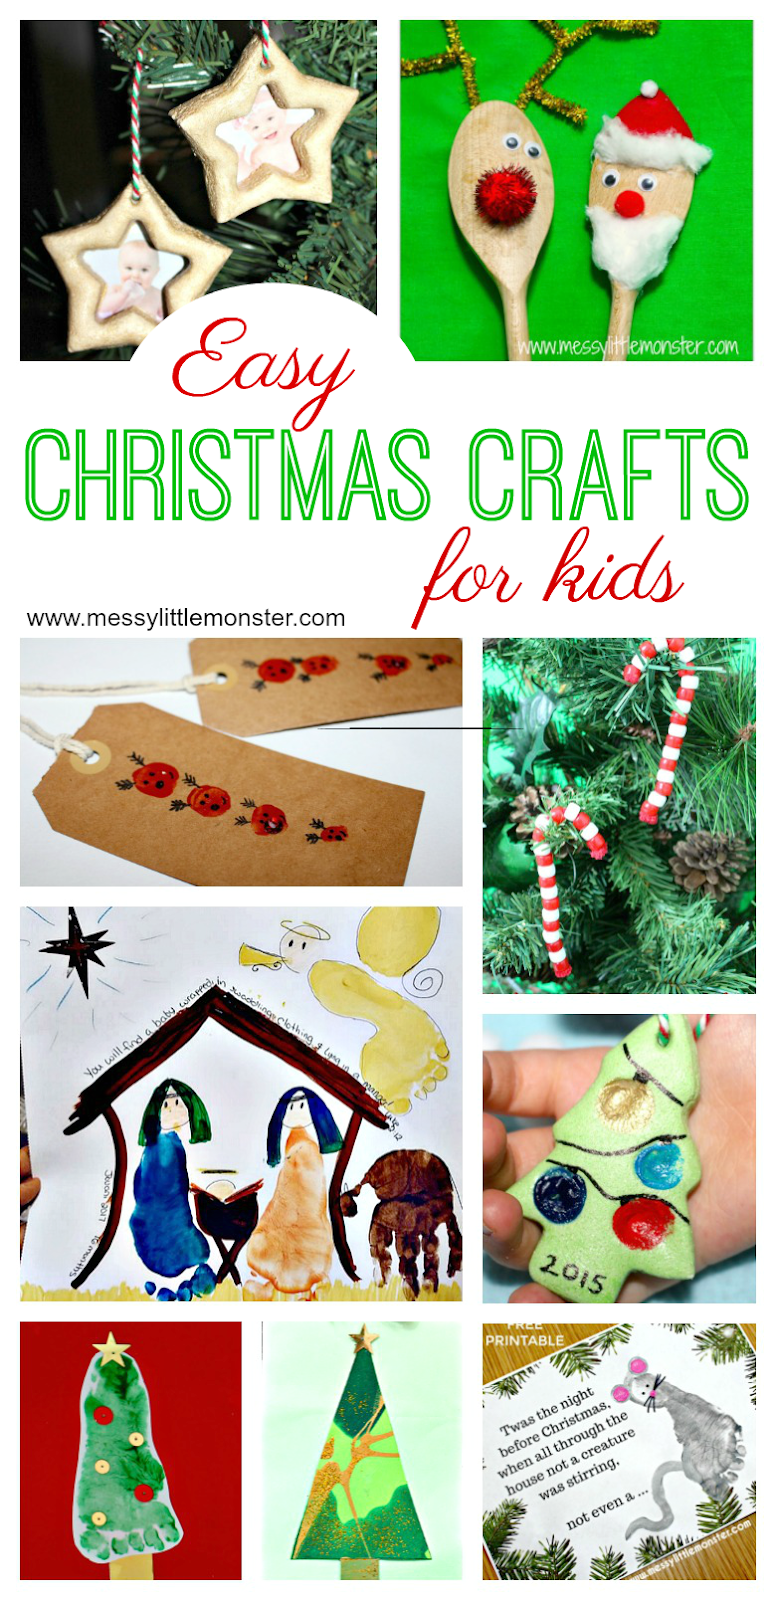 Easy Christmas crafts for kids. Preschool Christmas crafts.